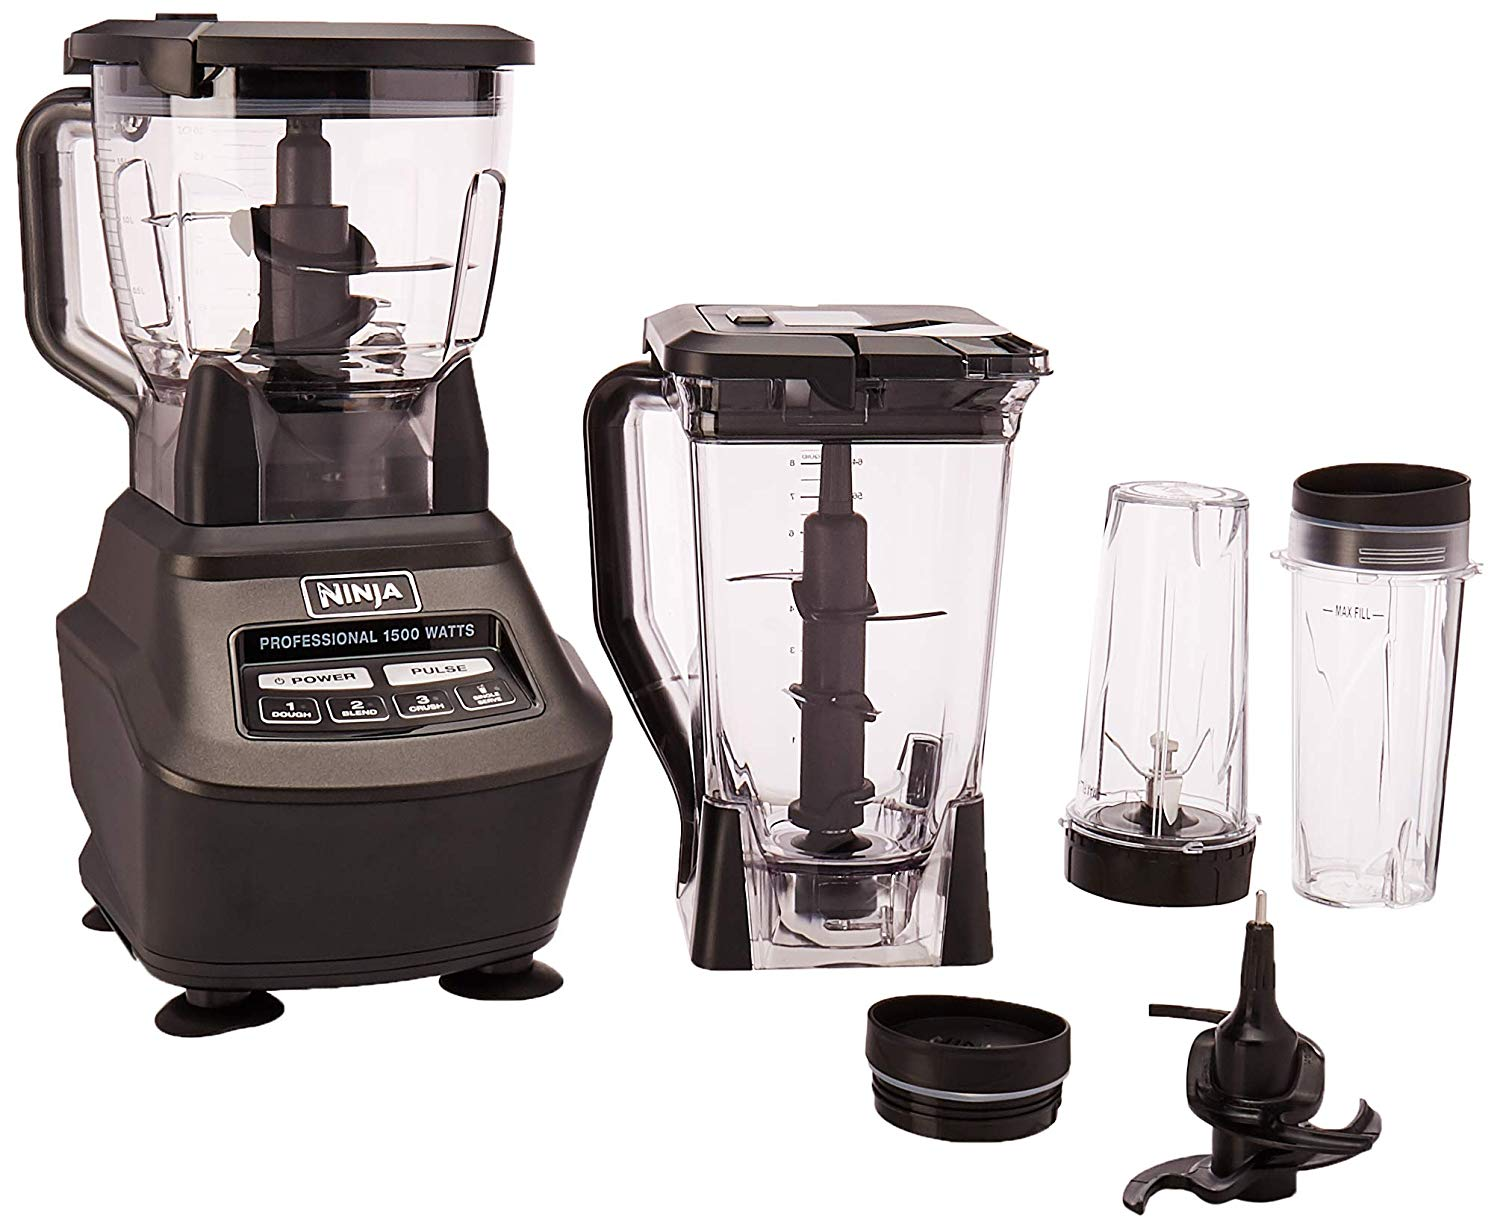 Ninja Mega Kitchen System (BL770) Blender/Food Processor with 1500W Auto-iQ Base, 72oz Pitcher, 64oz Processor Bowl, (2) 16oz Cup for Smoothies, Dough &...